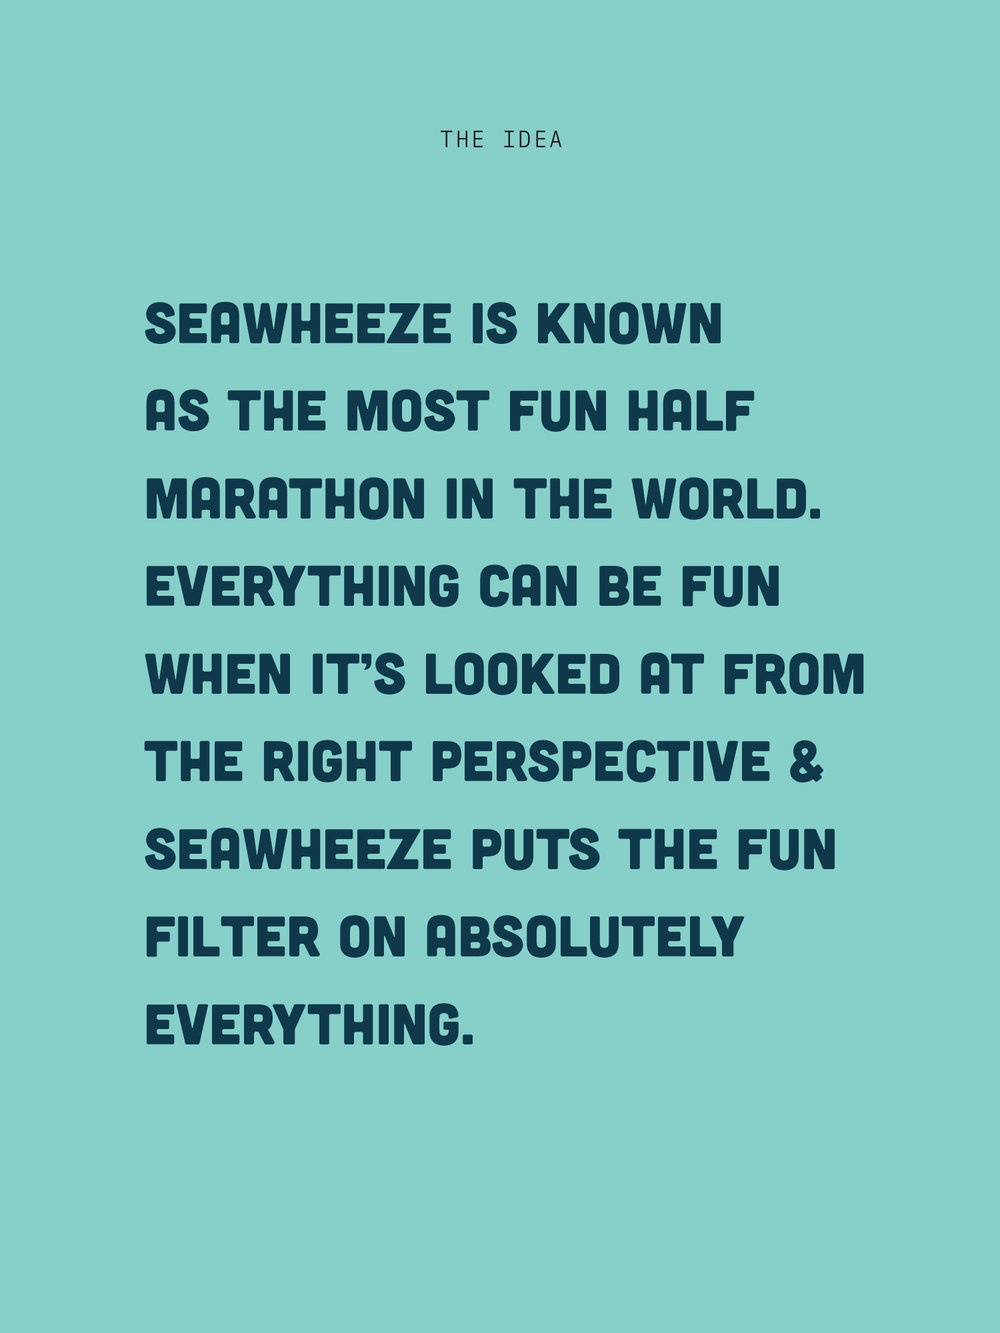 Creative insight that informed the brand strategy for the 2018 lululemon seawheeze half marathon.